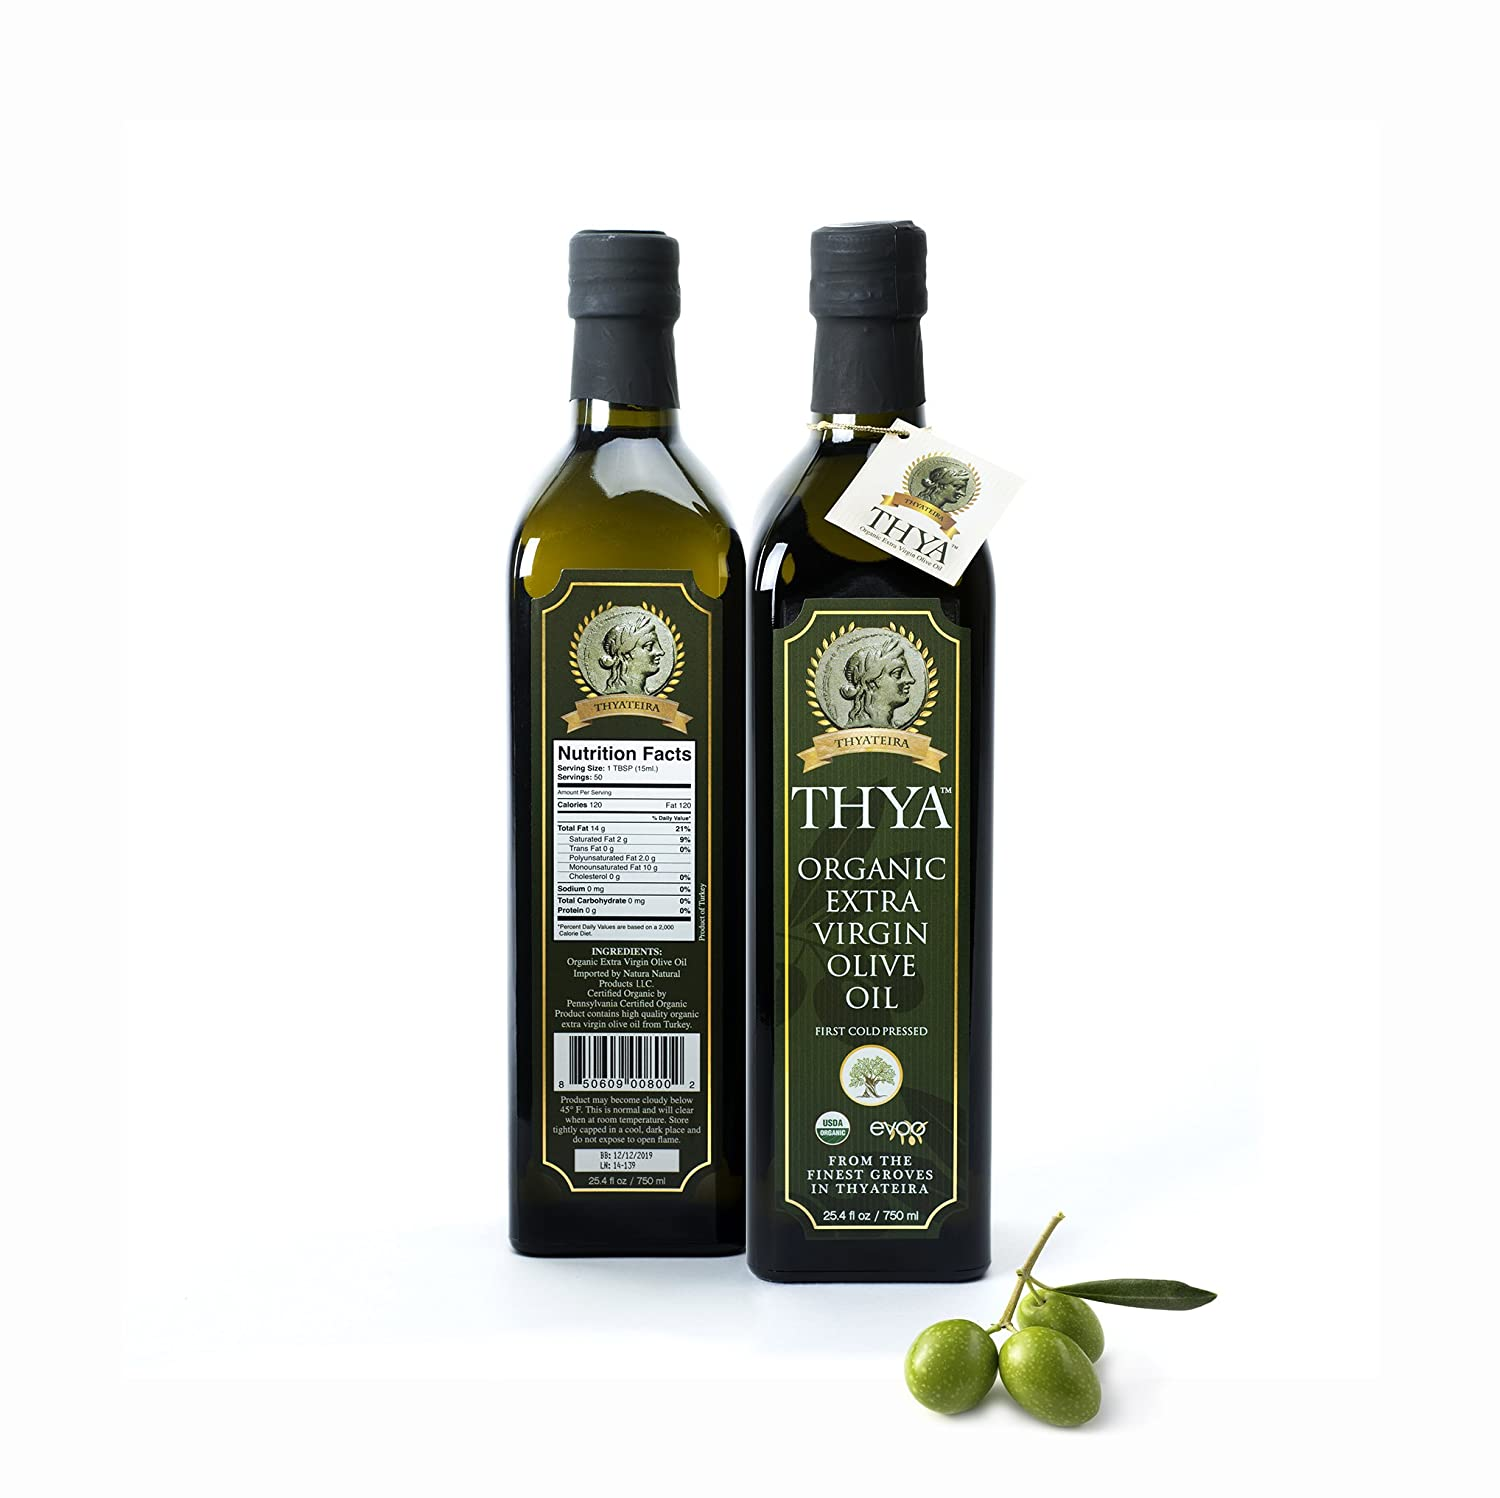 USDA Organic Extra Virgin Olive Oil by THYA, First Cold Pressed, Single  Source, Unblended, Natural,